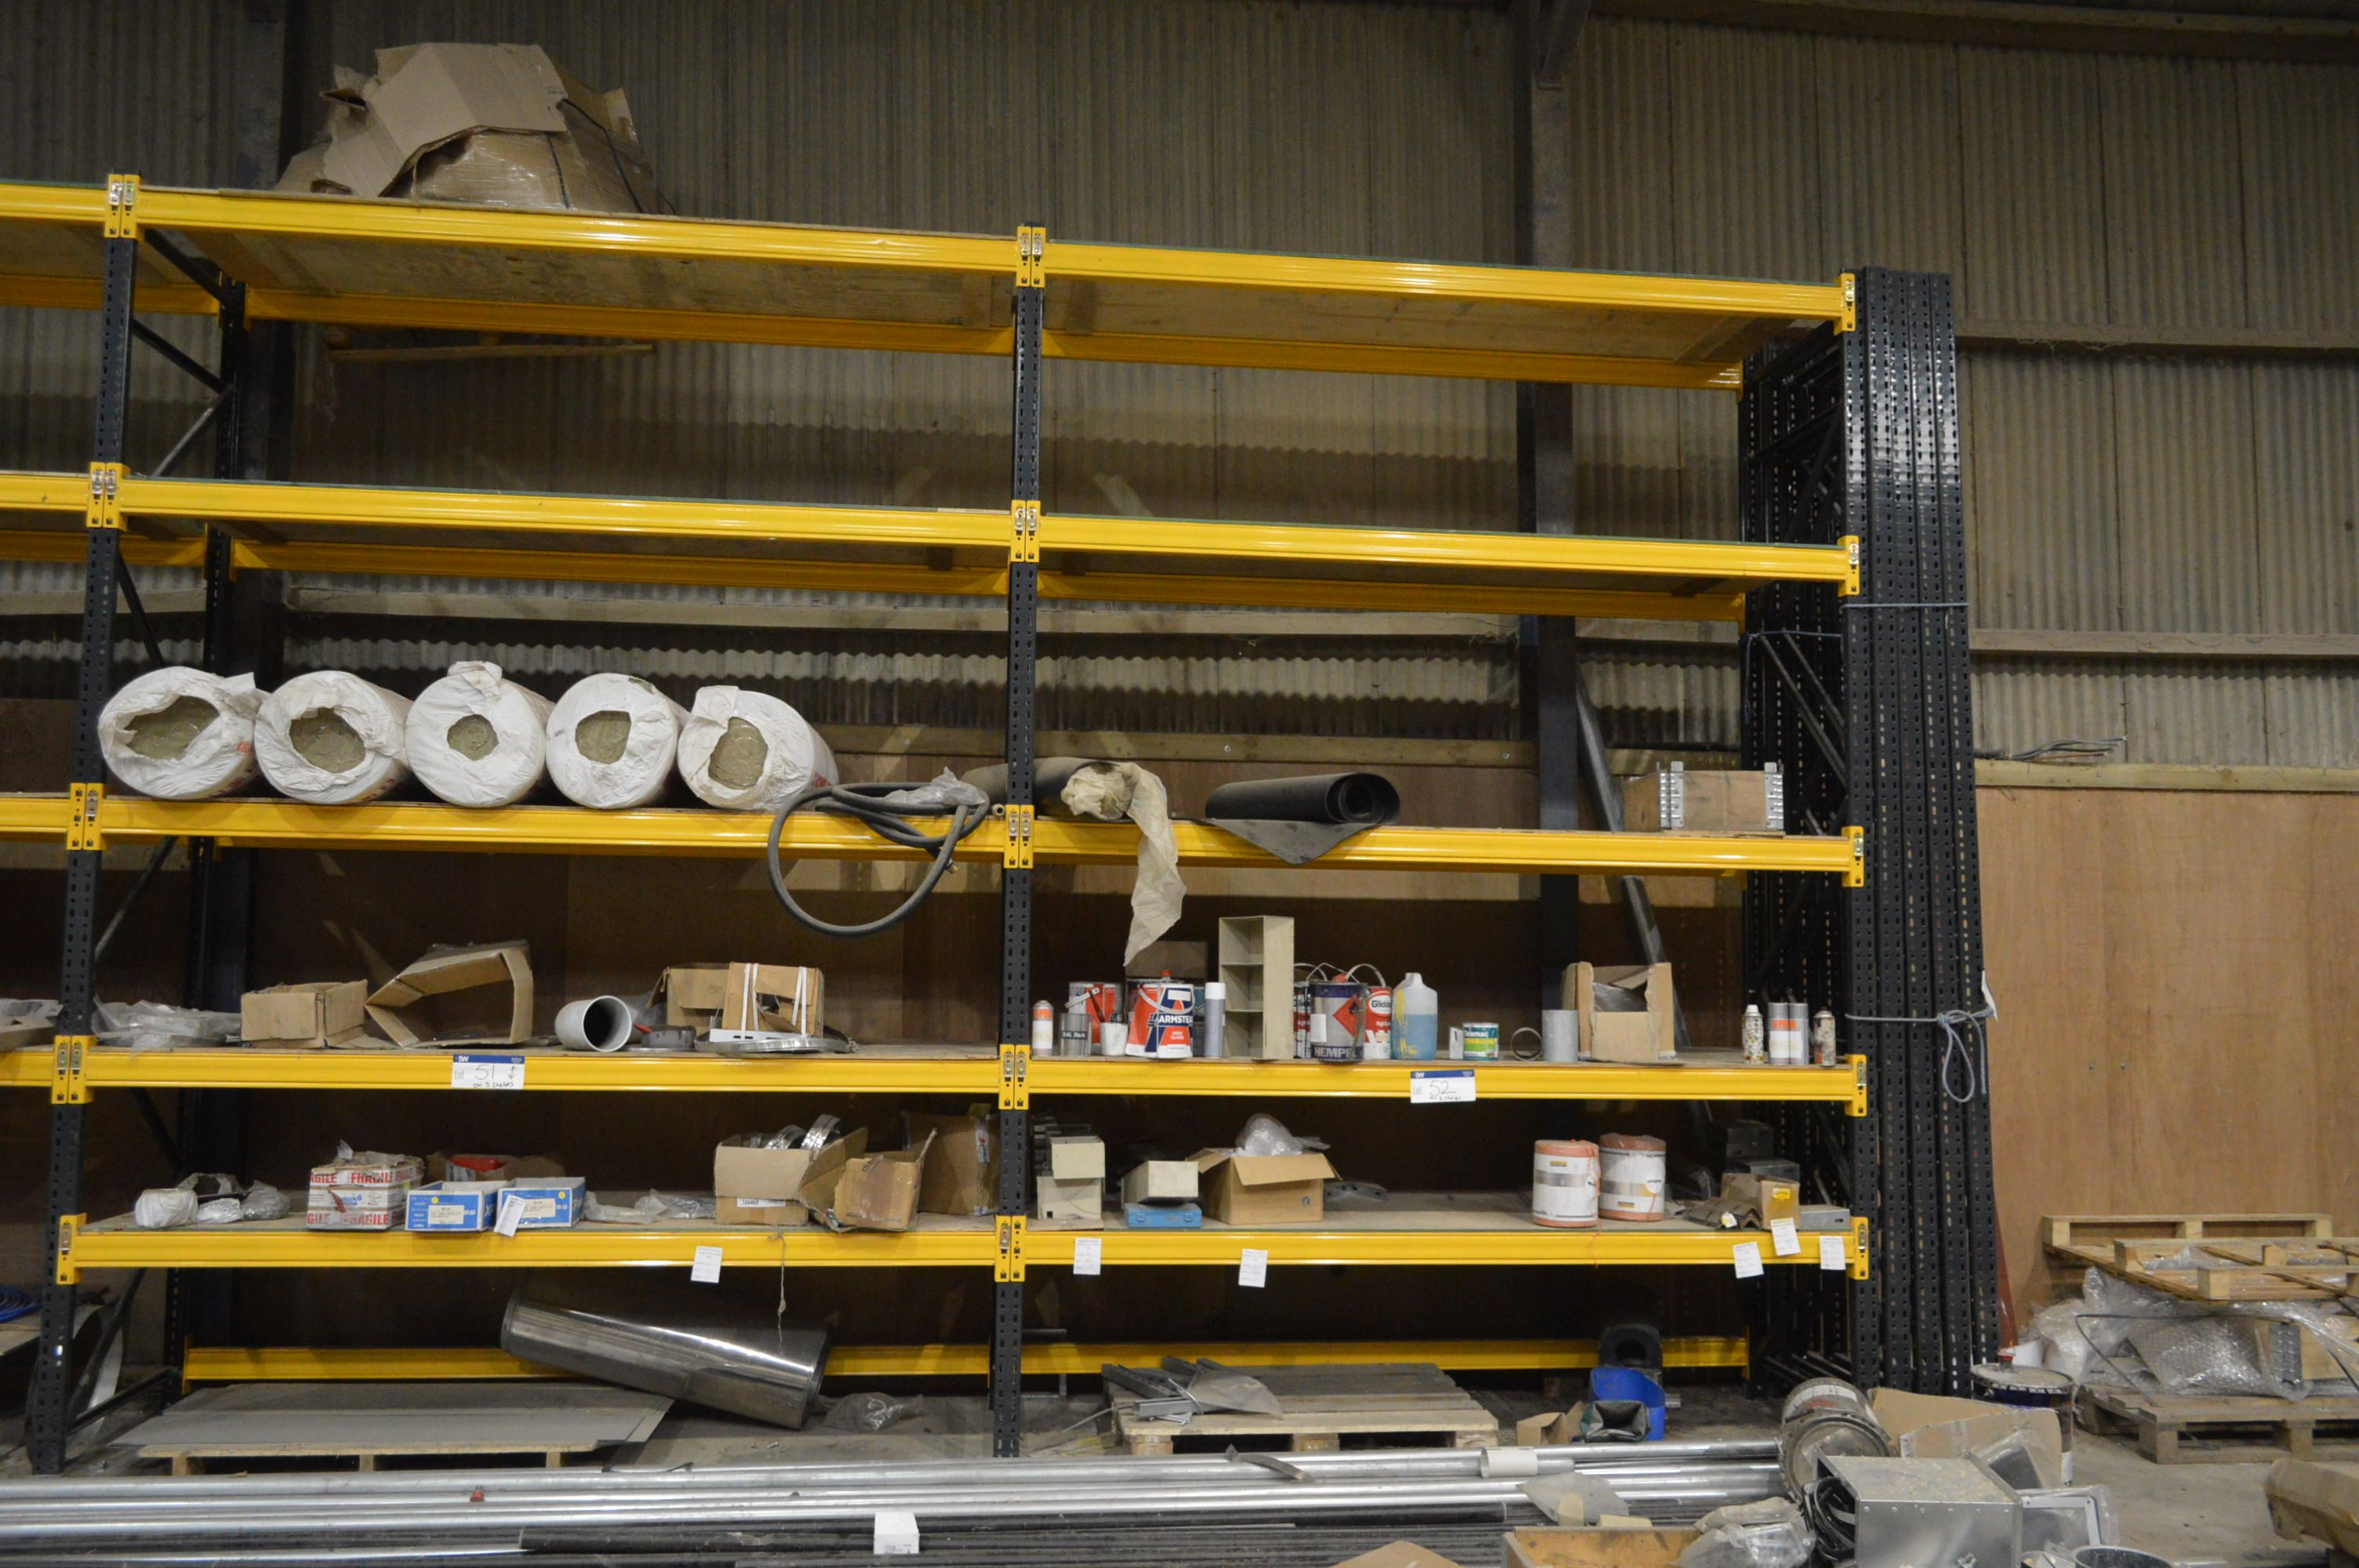 Lot 53 - EIGHT BAYS MULTI-TIER PALLET RACKING, comprising 15 uprights, each approx. 900mm x 4m high,